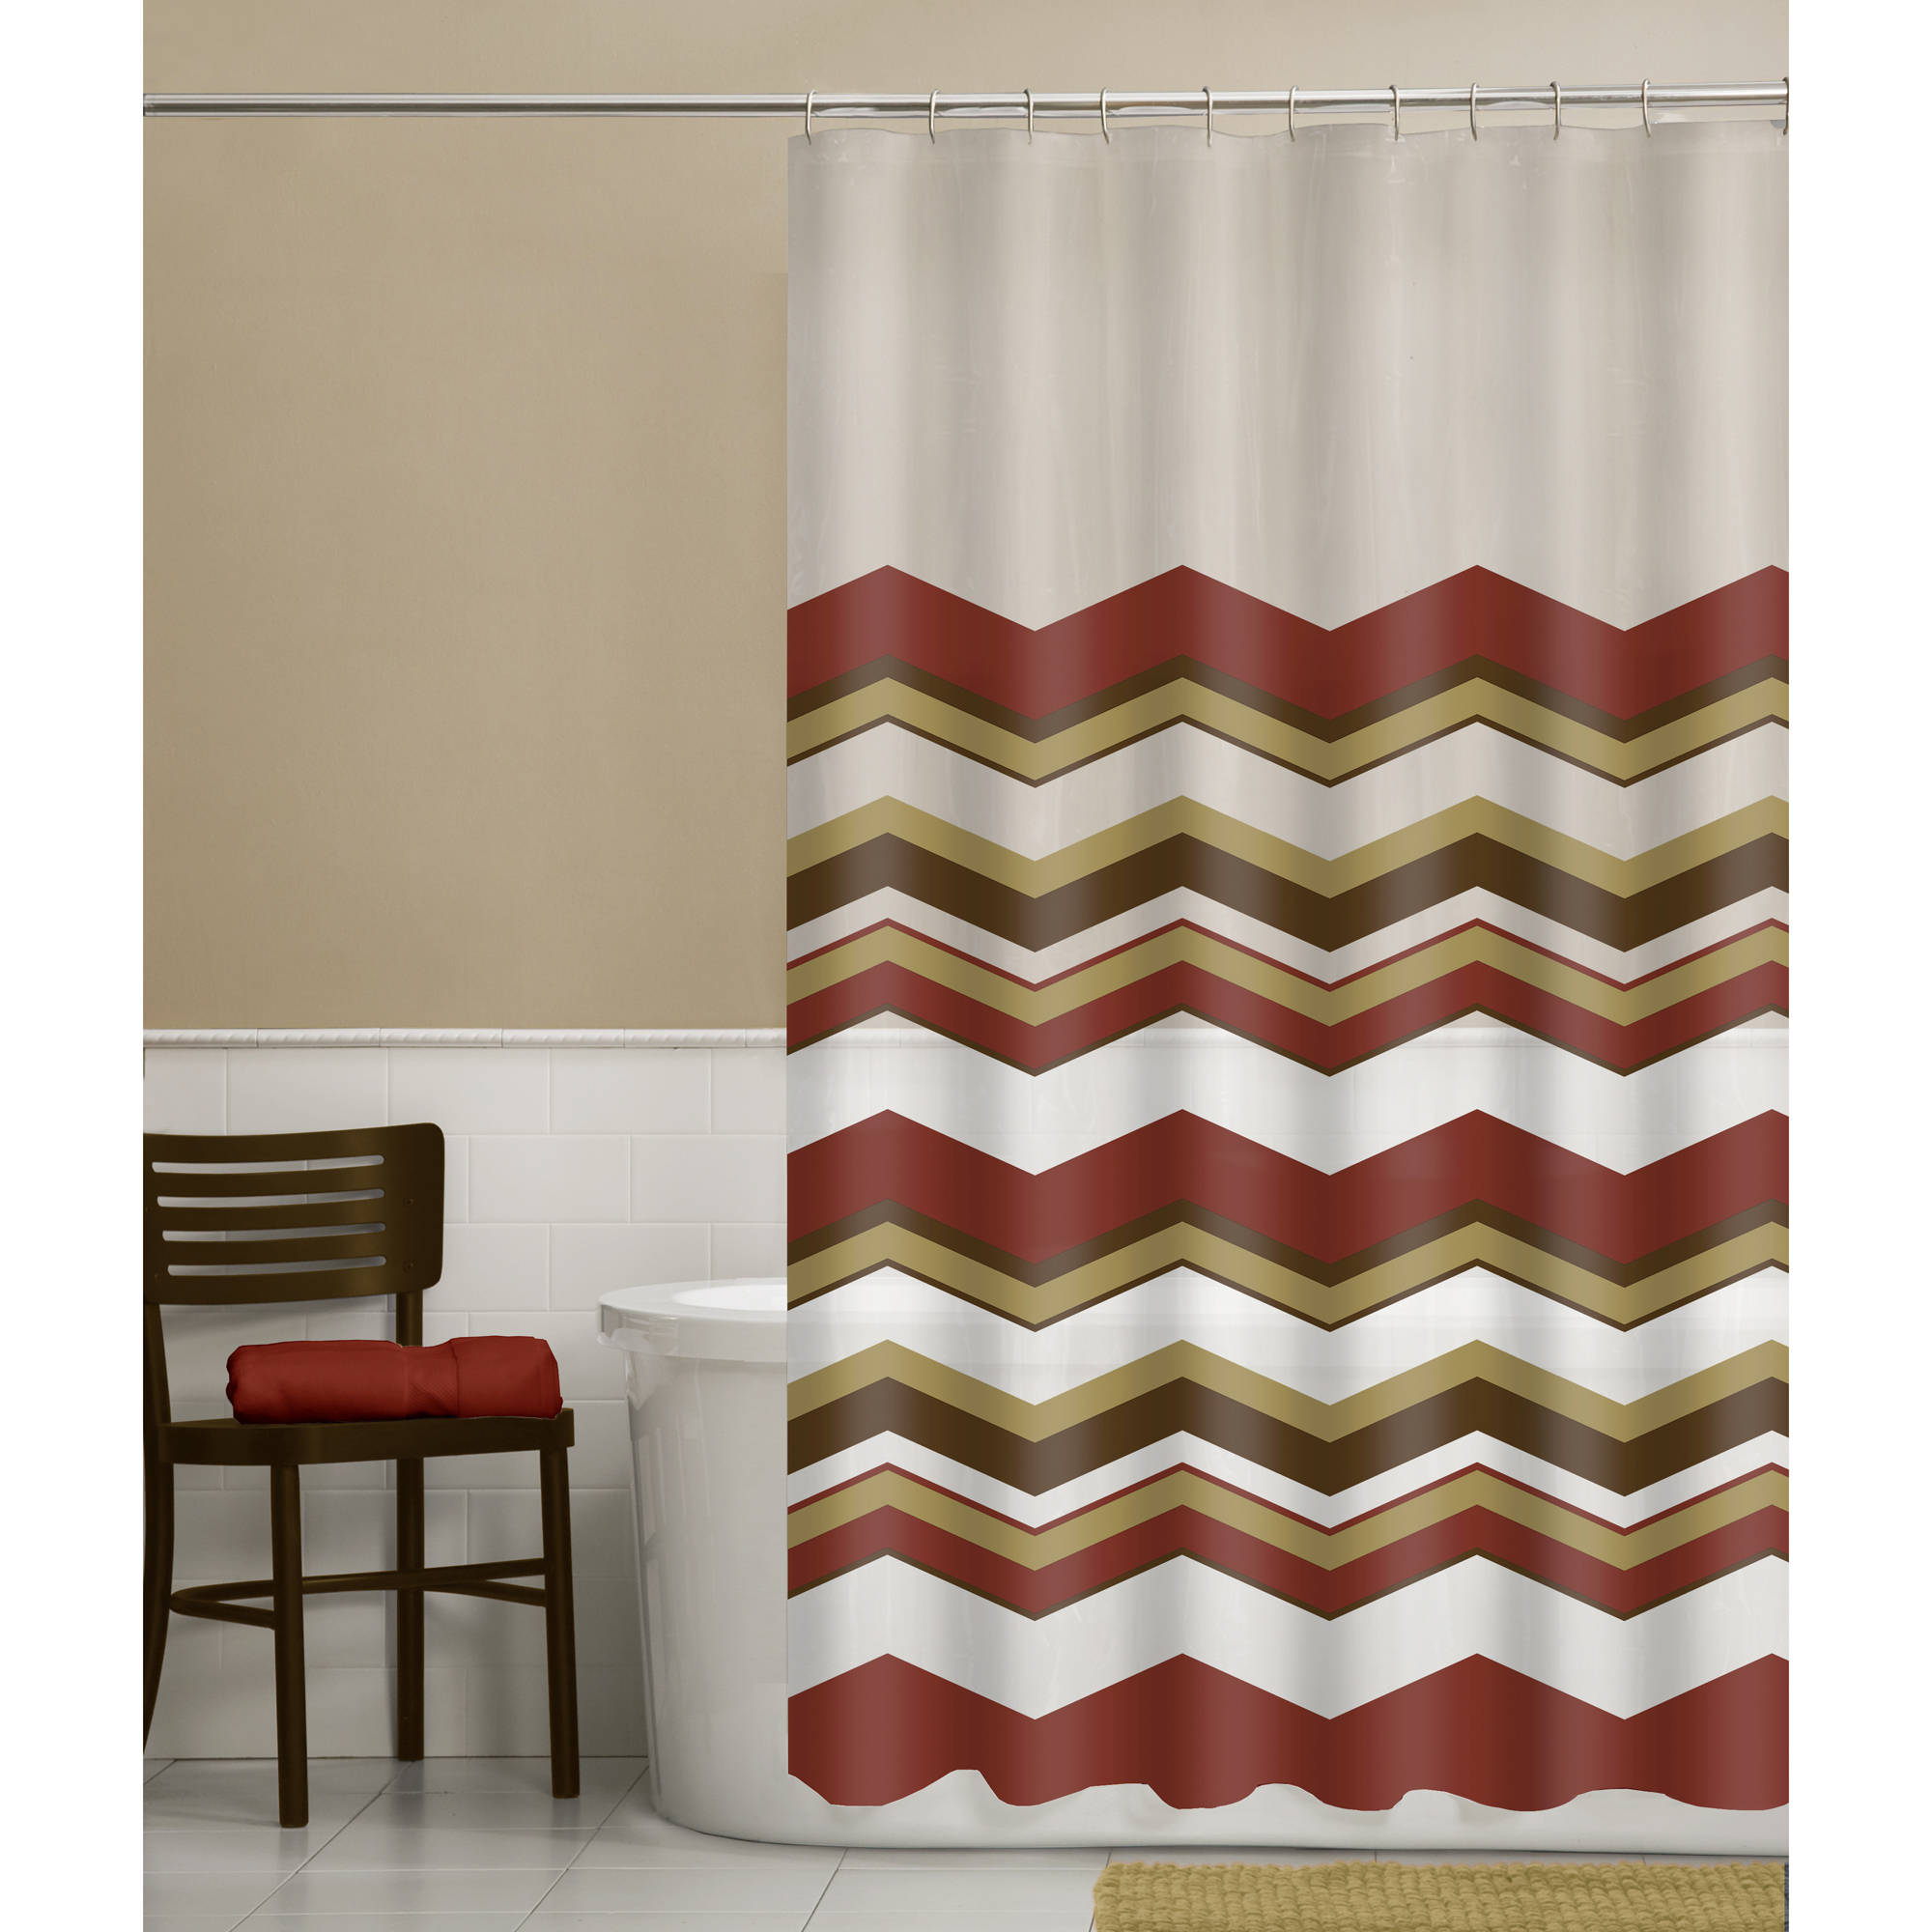 Maytex Chevron 13-Piece PEVA Shower Curtain Set